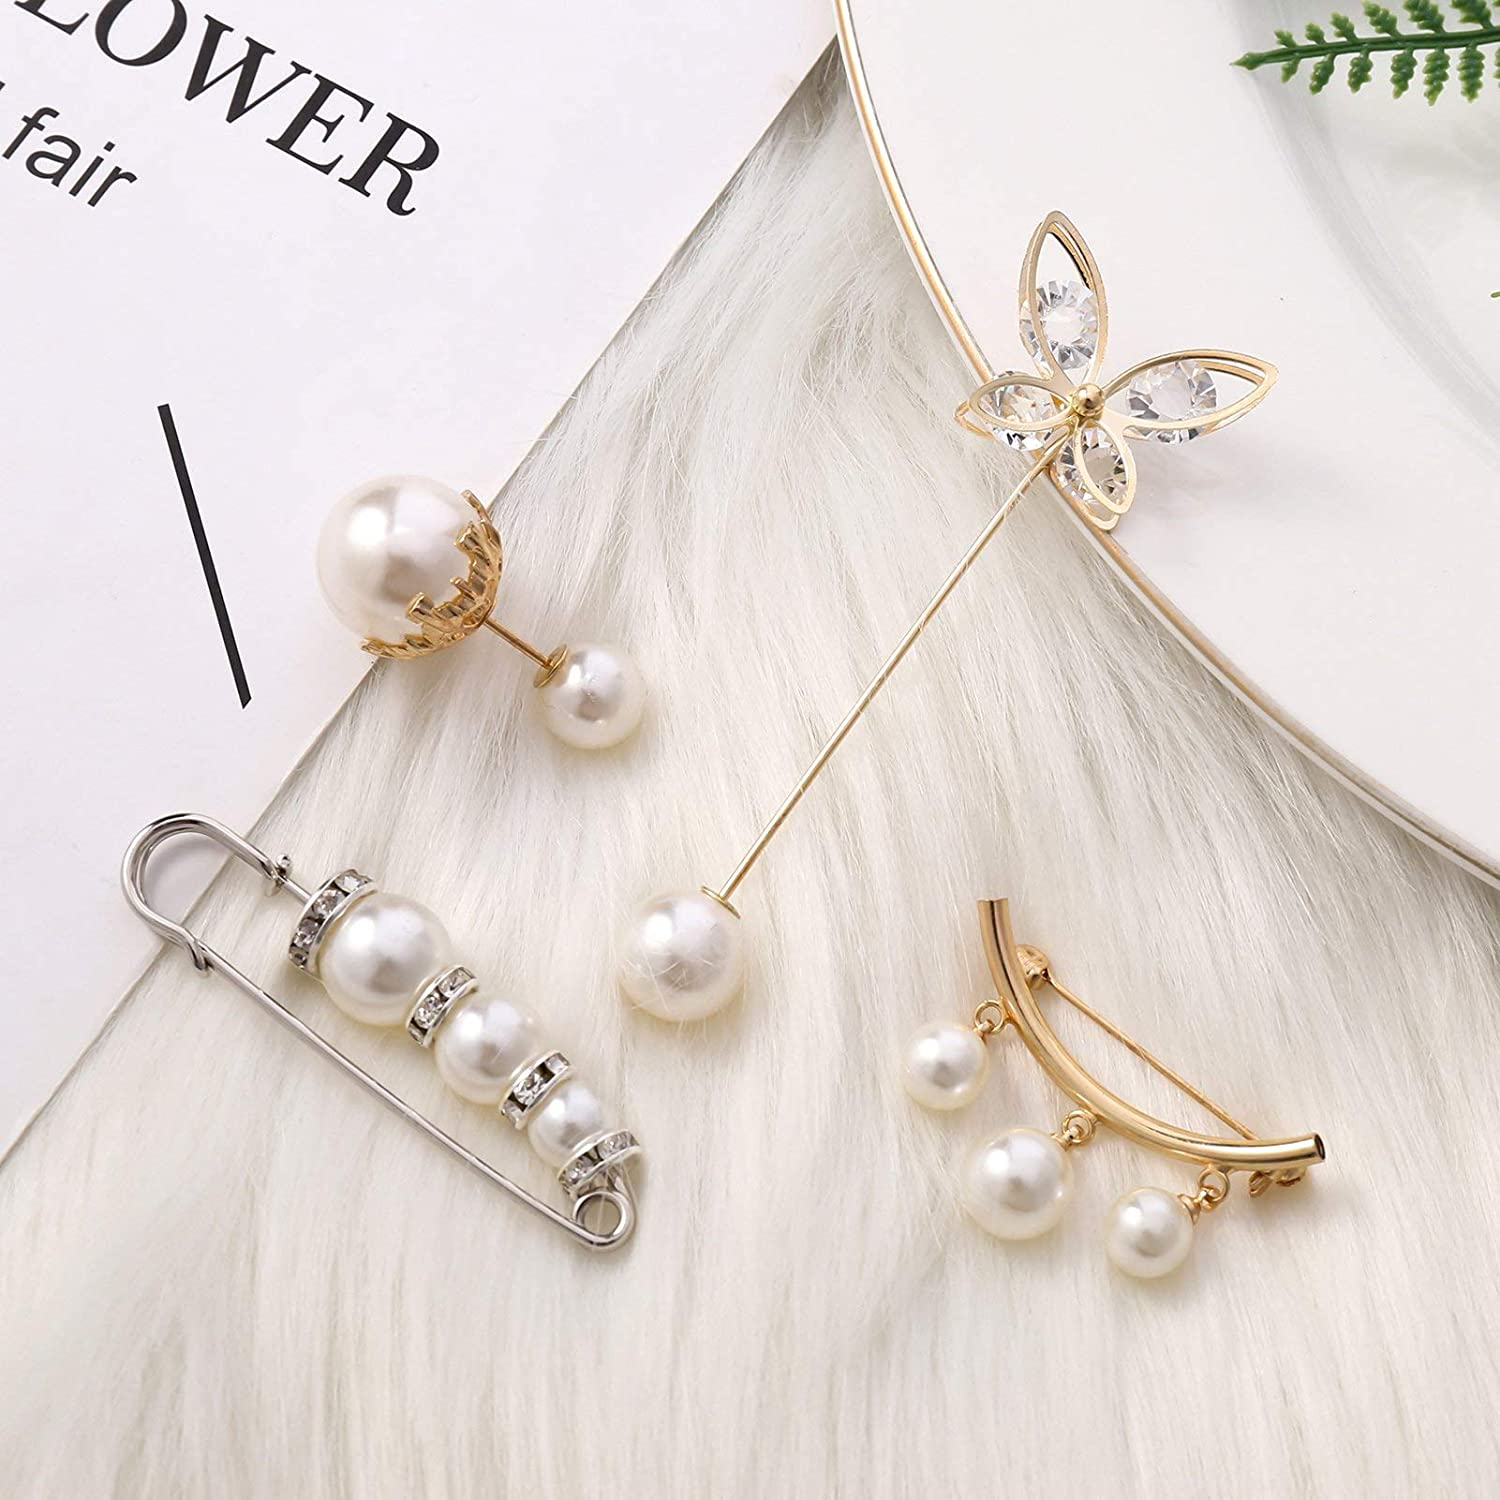 Vintage Sweater/Cardigan Clip fashion Shirts Pearl Brooch Safety Pin Jewelry Set for Women Girls Costume Accessory picidae 8Pcs Pearl Brooch Pin Set